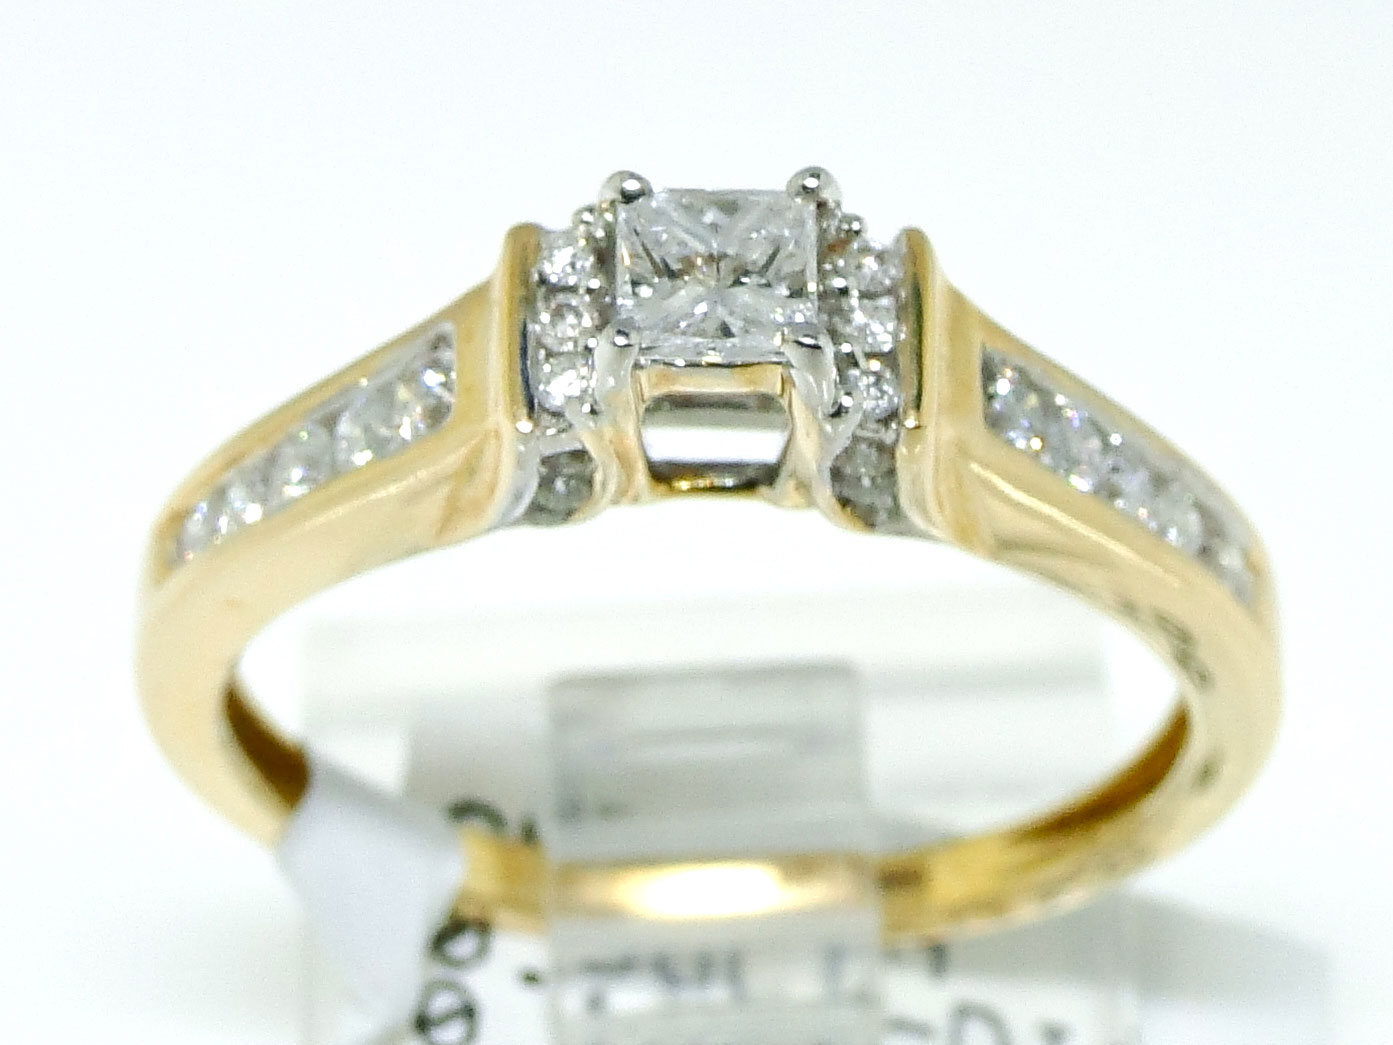 14k yellow gold princess cut engagement solitaire band